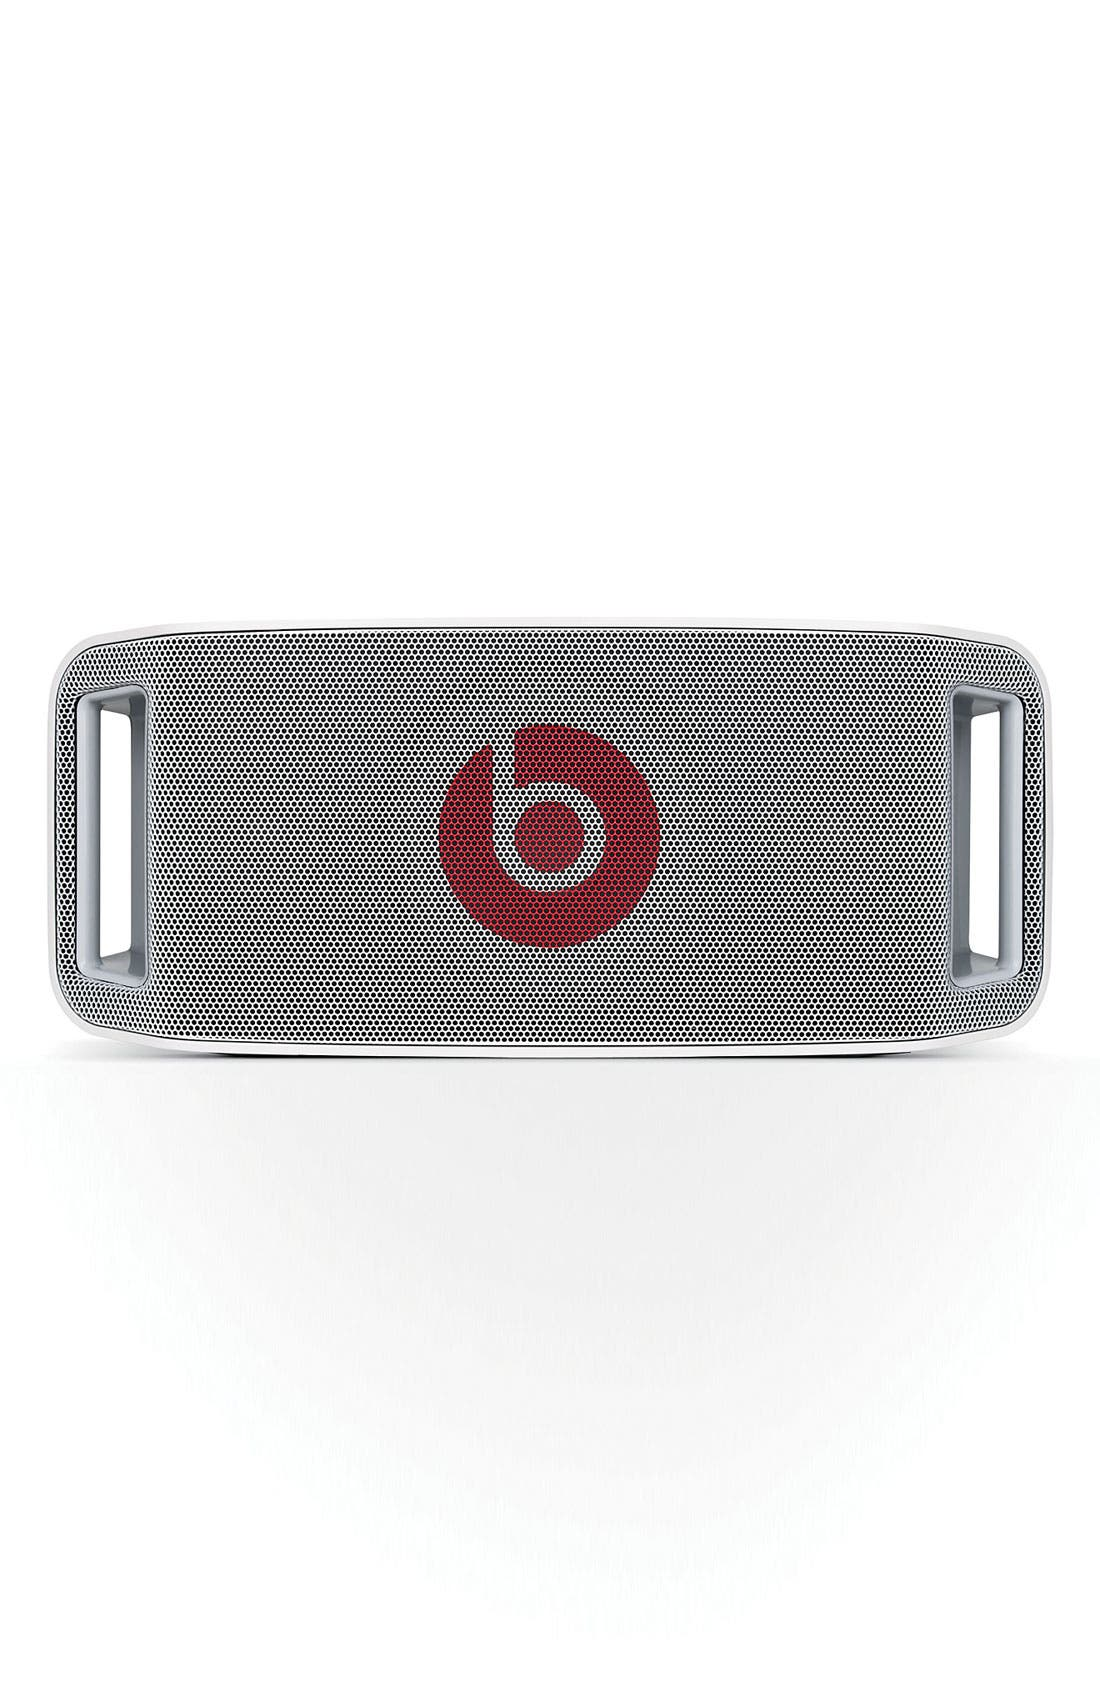 Main Image - Beats by Dr. Dre™ 'Beatbox™' High Performance Portable Audio System from Monster®